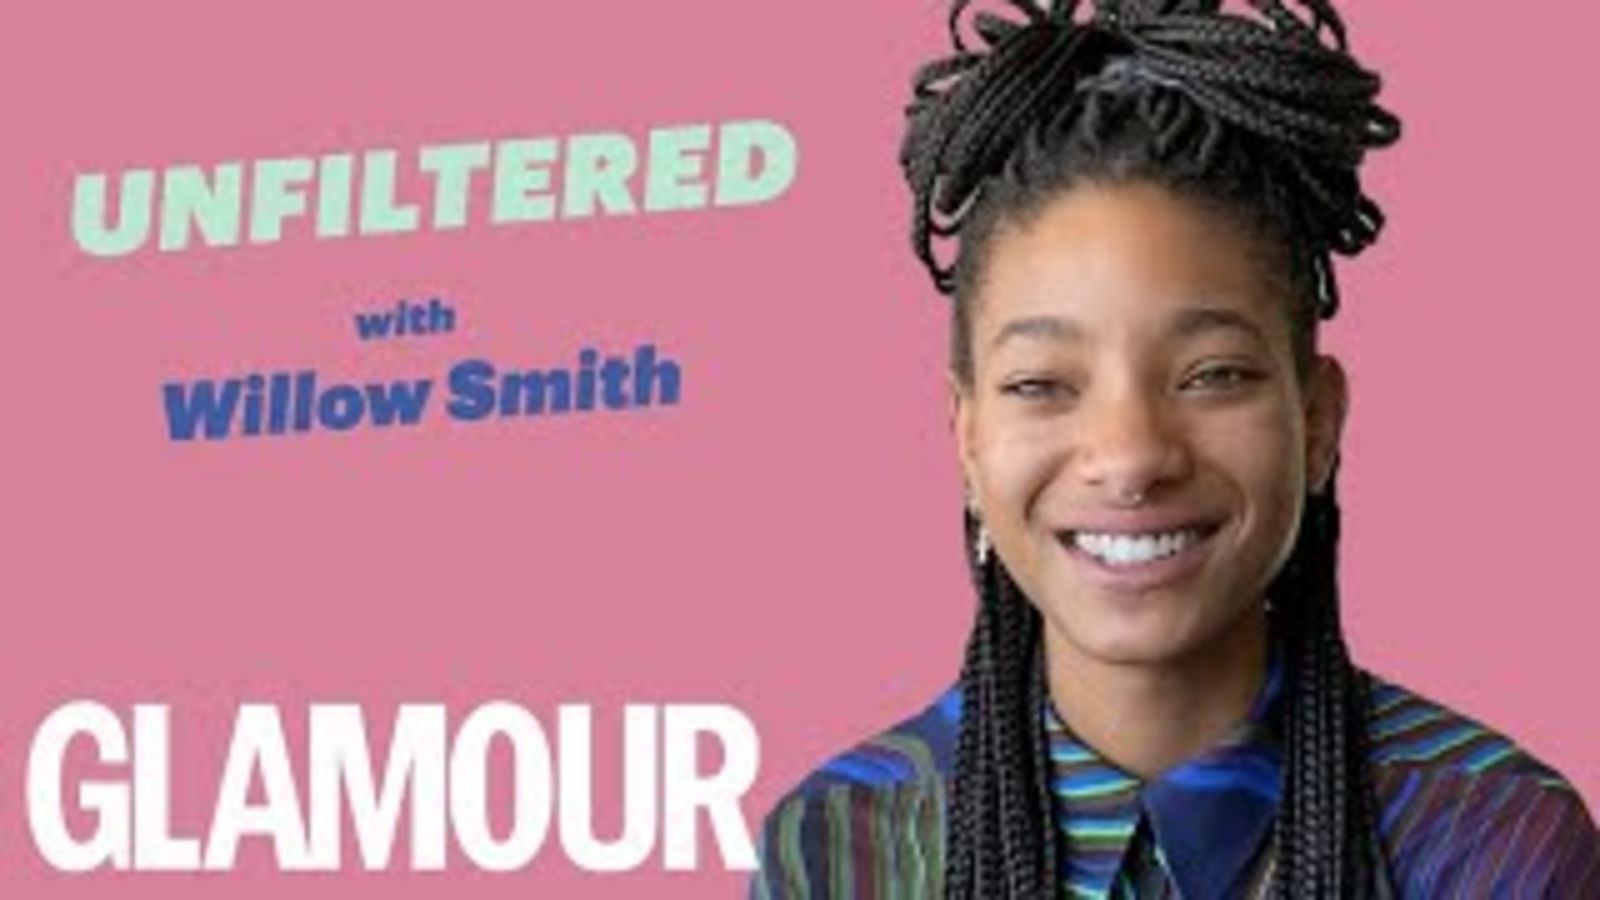 Willow Smith On Growing Up With Famous Parents & Her New Pop-Punk Era    GLAMOUR Unfiltered